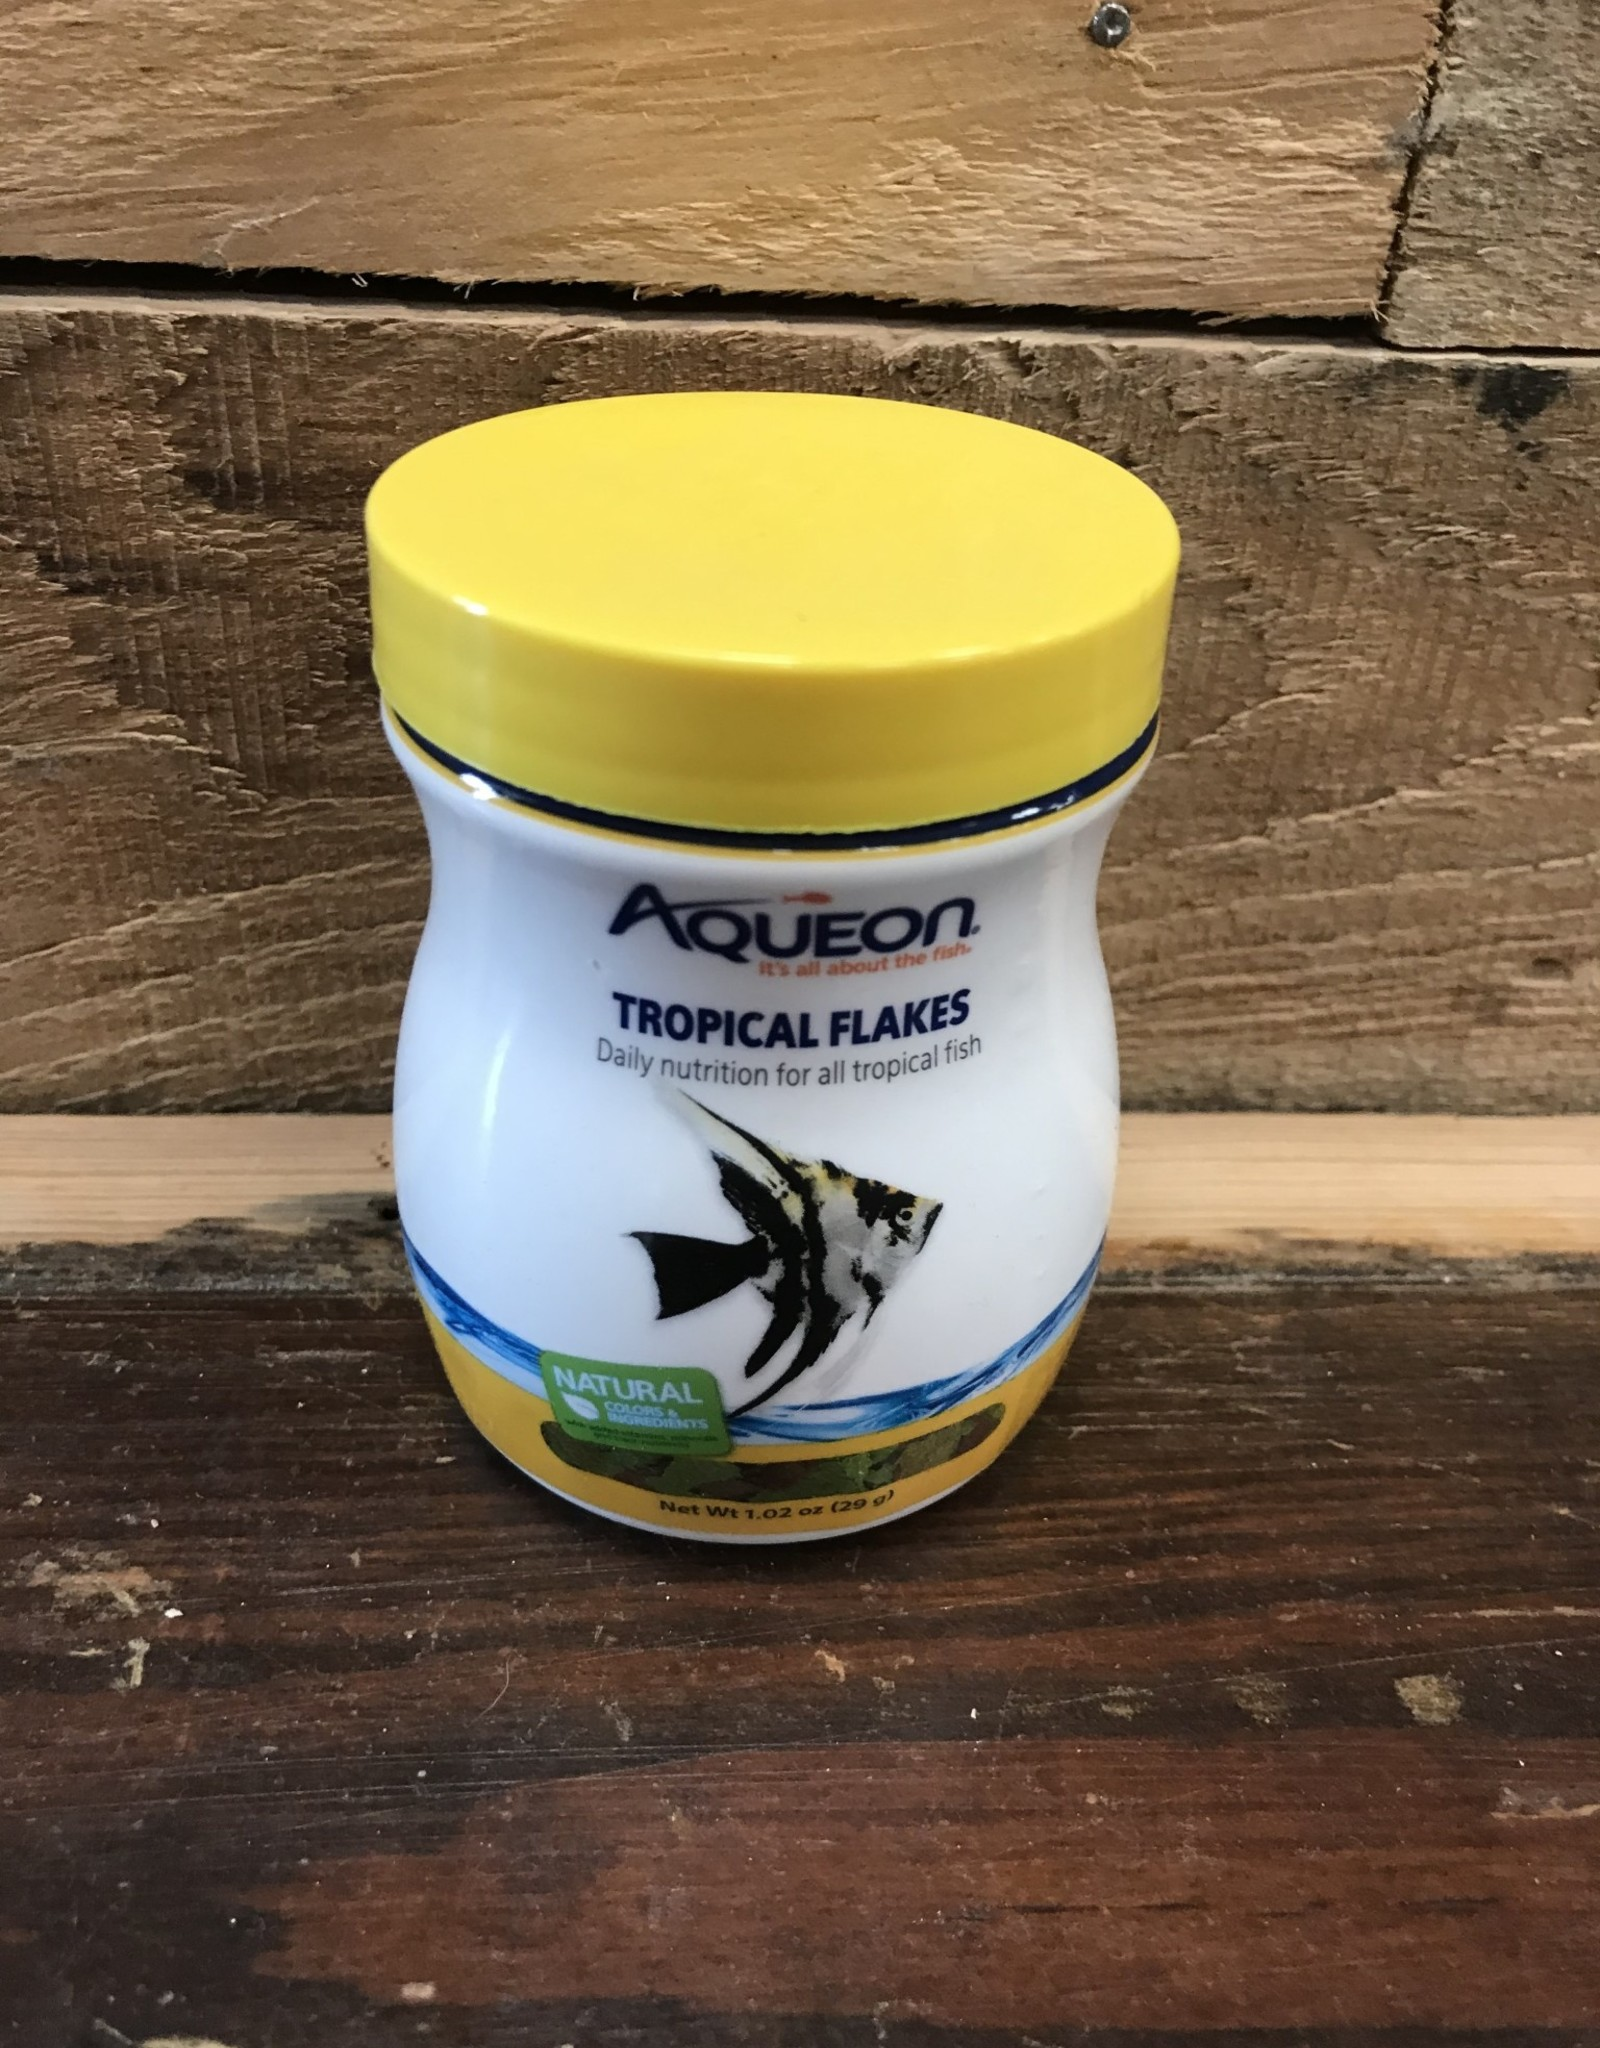 Aqueon Aqueon 1.02 OZ. TROPICAL FLAKES